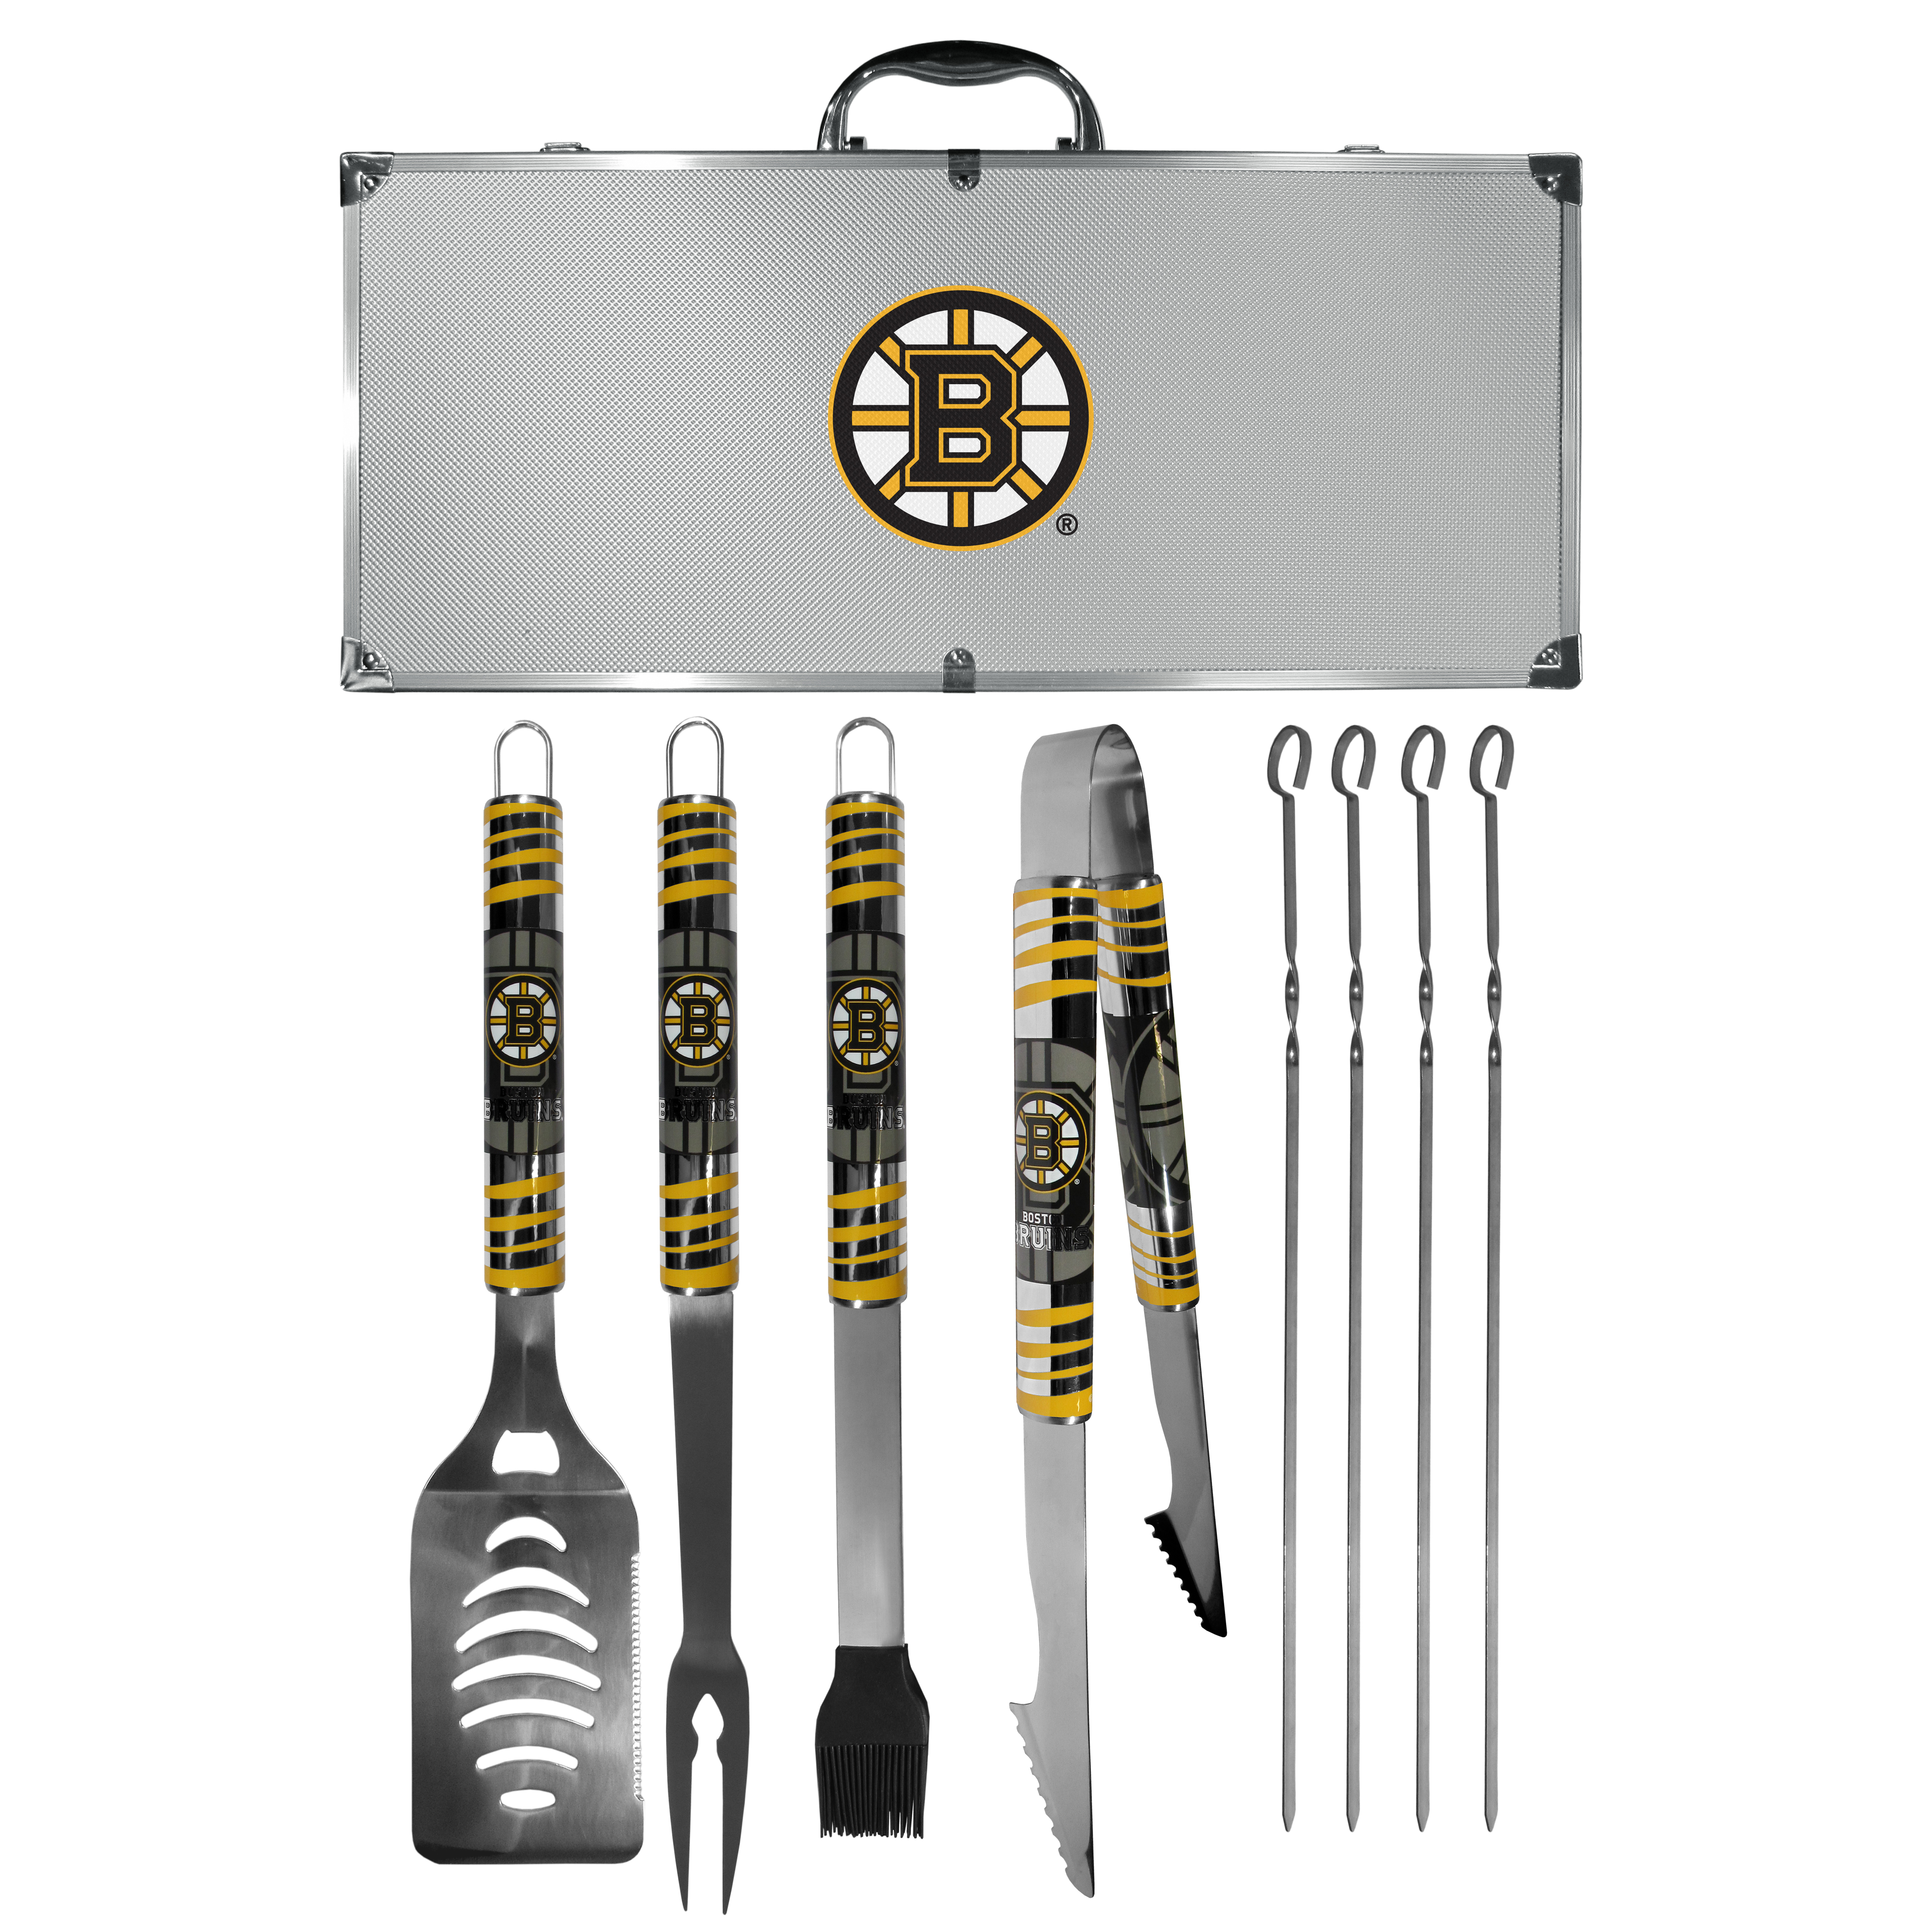 Boston Bruins® 8 pc Tailgater BBQ Set - This is the ultimate Boston Bruins® tailgate accessory! The high quality, 420 grade stainless steel tools are durable and well-made enough to make even the pickiest grill master smile. This complete grill accessory kit includes; 4 skewers, spatula with bottle opener and serrated knife edge, basting brush, tongs and a fork. The 18 inch metal carrying case is perfect for great outdoor use making grilling an ease while camping, tailgating or while having a game day party on your patio. The tools are 17 inches long and feature vivid team graphics. The metal case features a large team emblem with exceptional detail. This high-end men's gift is sure to be a hit as a present on Father's Day or Christmas.